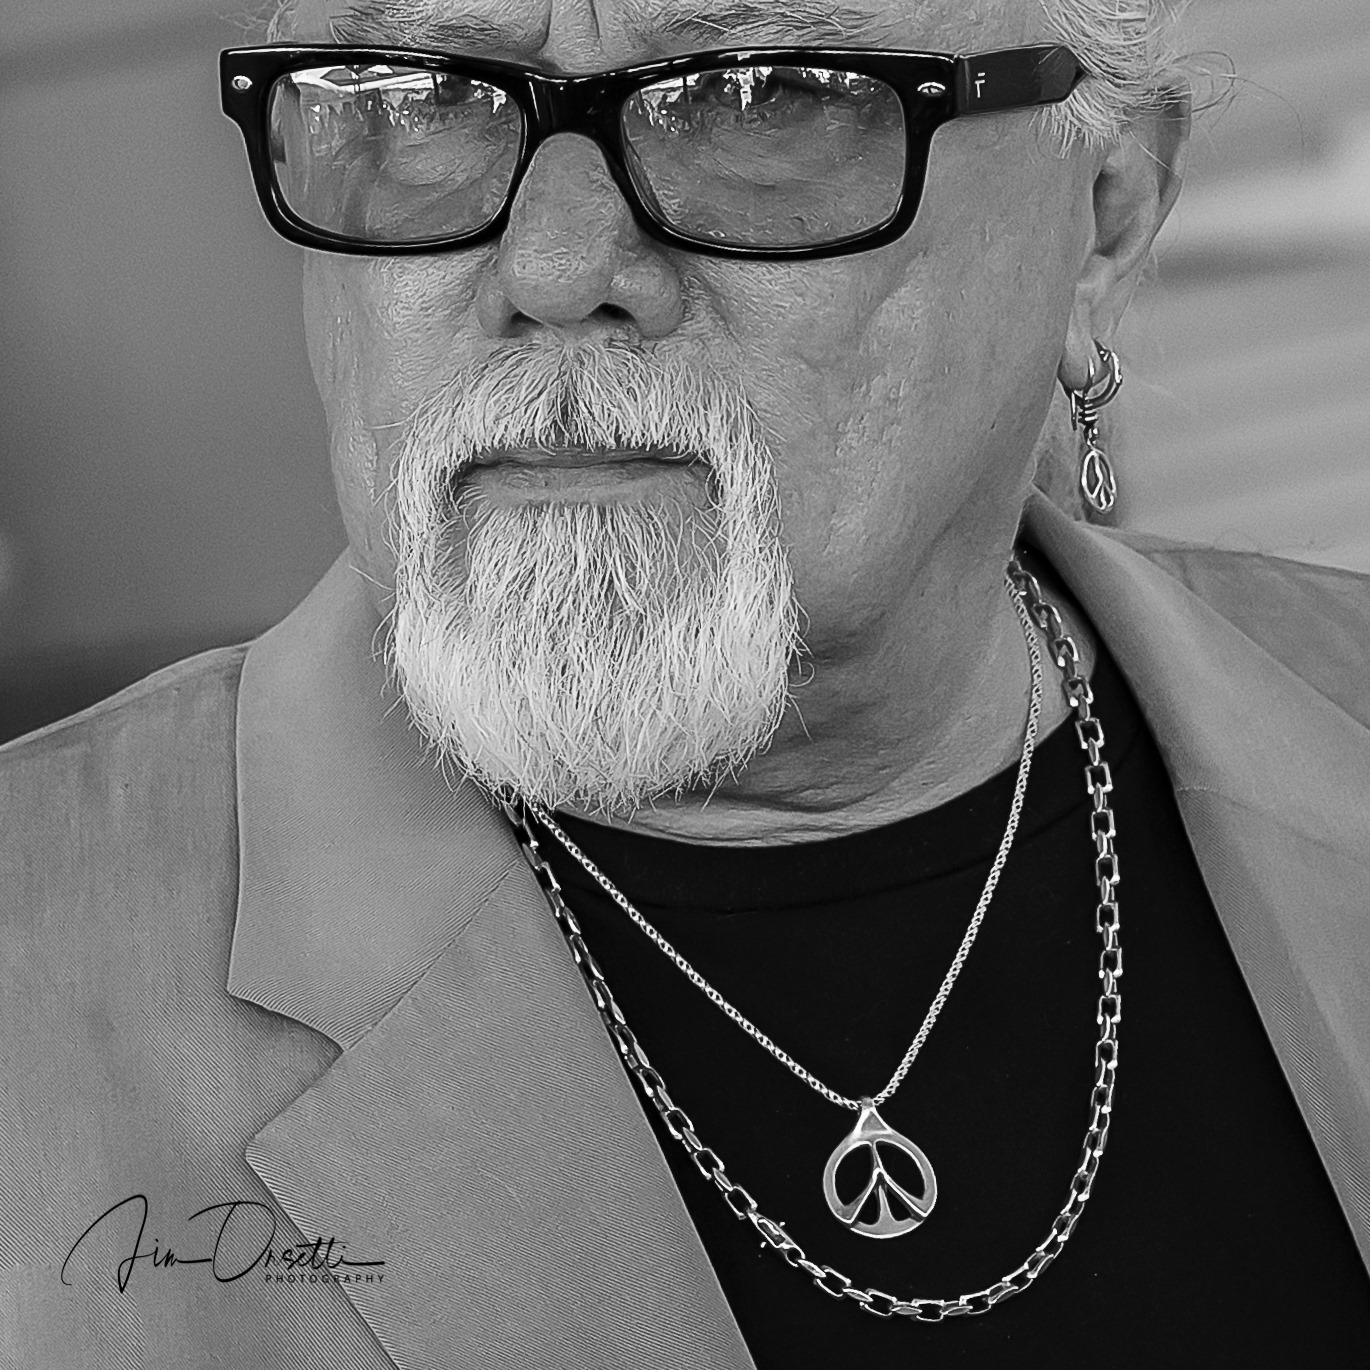 Wally Schnale at the 2nd Annual 7 Mile House Jazz Fest 2019